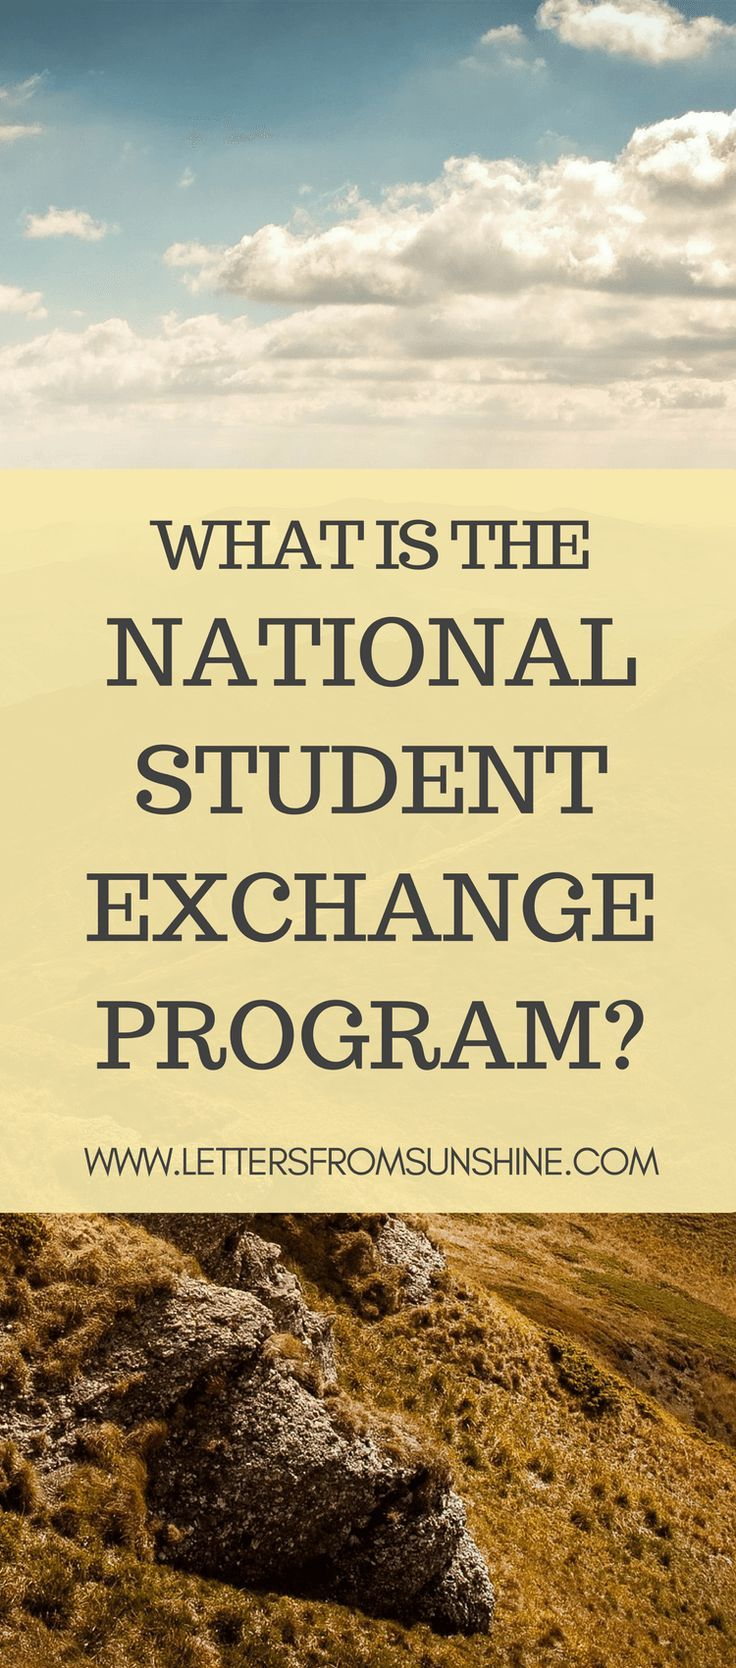 What is the National Student Exchange program?   Ever want to study at an out-of-state college for a cheaper price? Learn about the National Student Exchange program, which allows students to do just that.